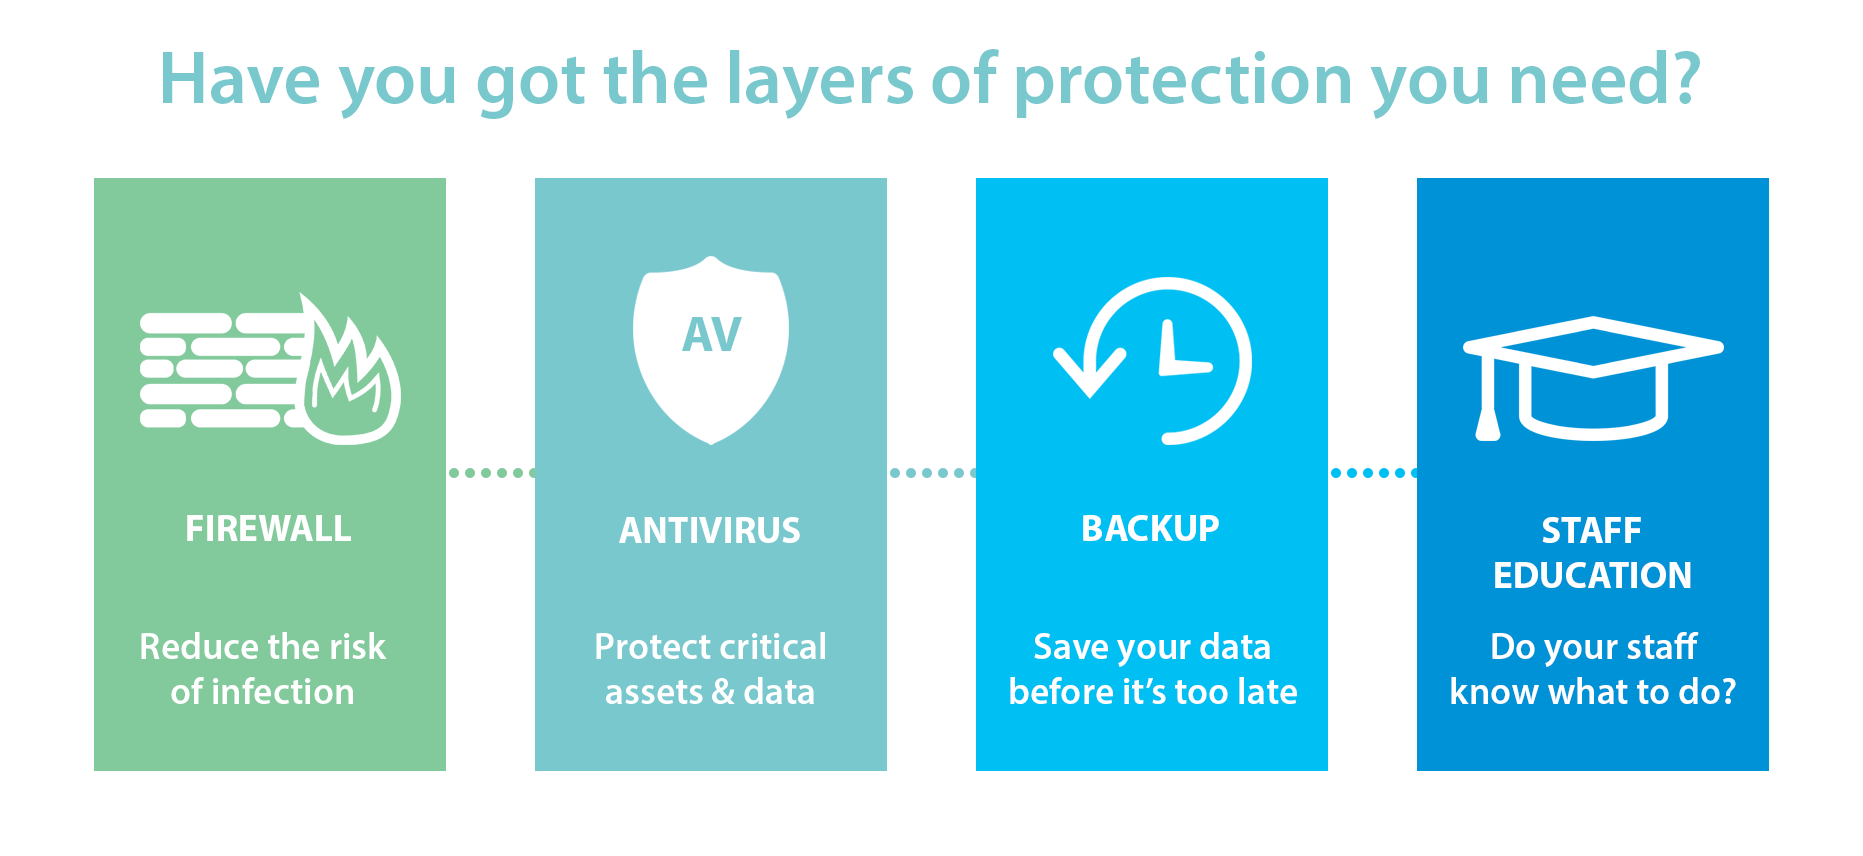 Layers of Protection - Antivirus, Firewall, Backup